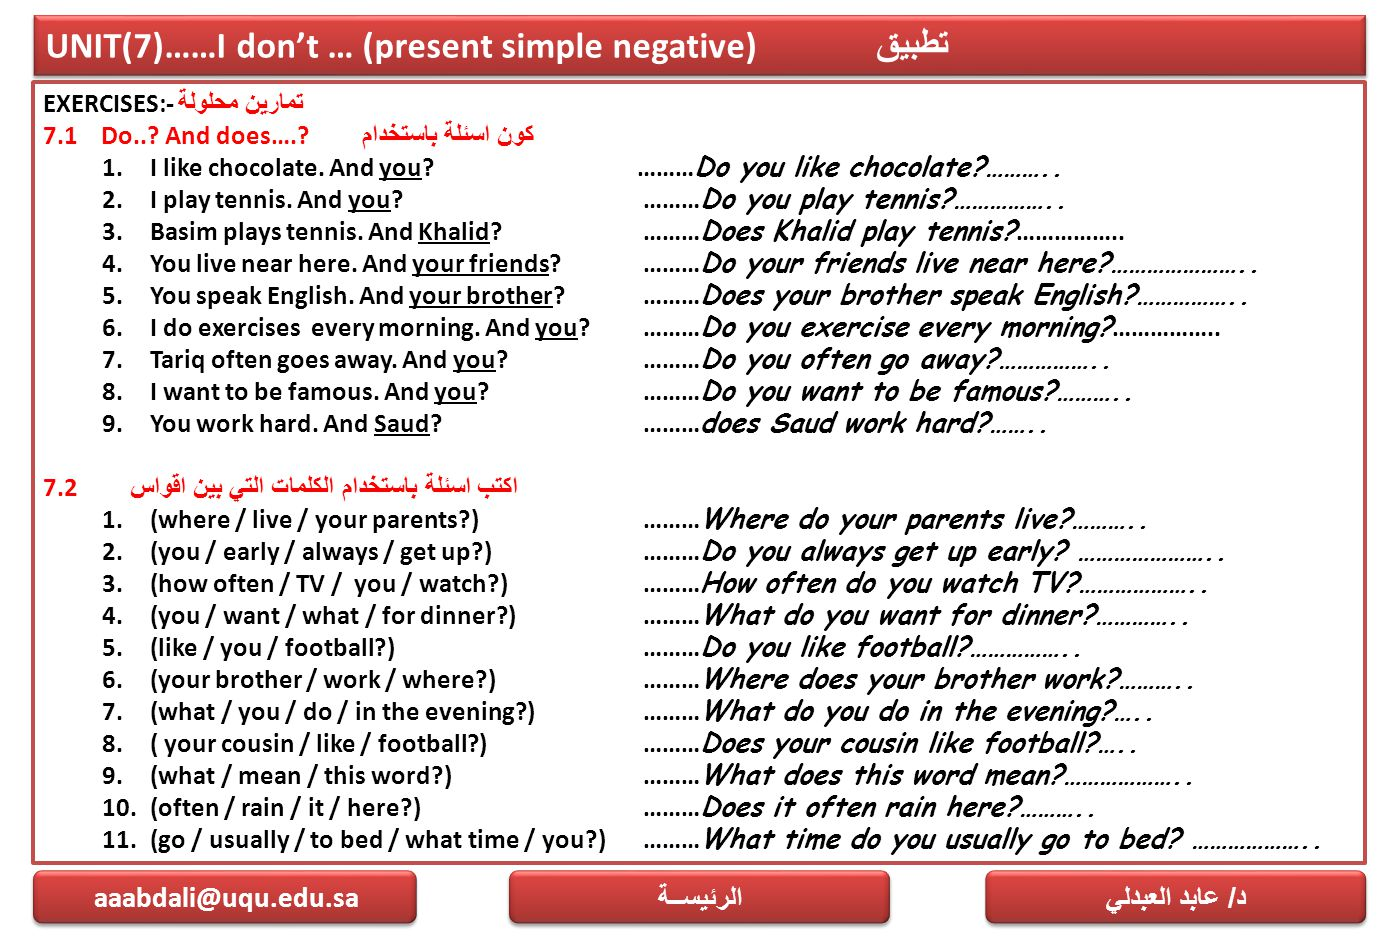 UNIT(7)……I don't … (present simple negative) تطبيق EXERCISES:- تمارين محلولة 7.1 Do..? And does….? كون اسئلة باستخدام 1.I like chocolate. And you?………